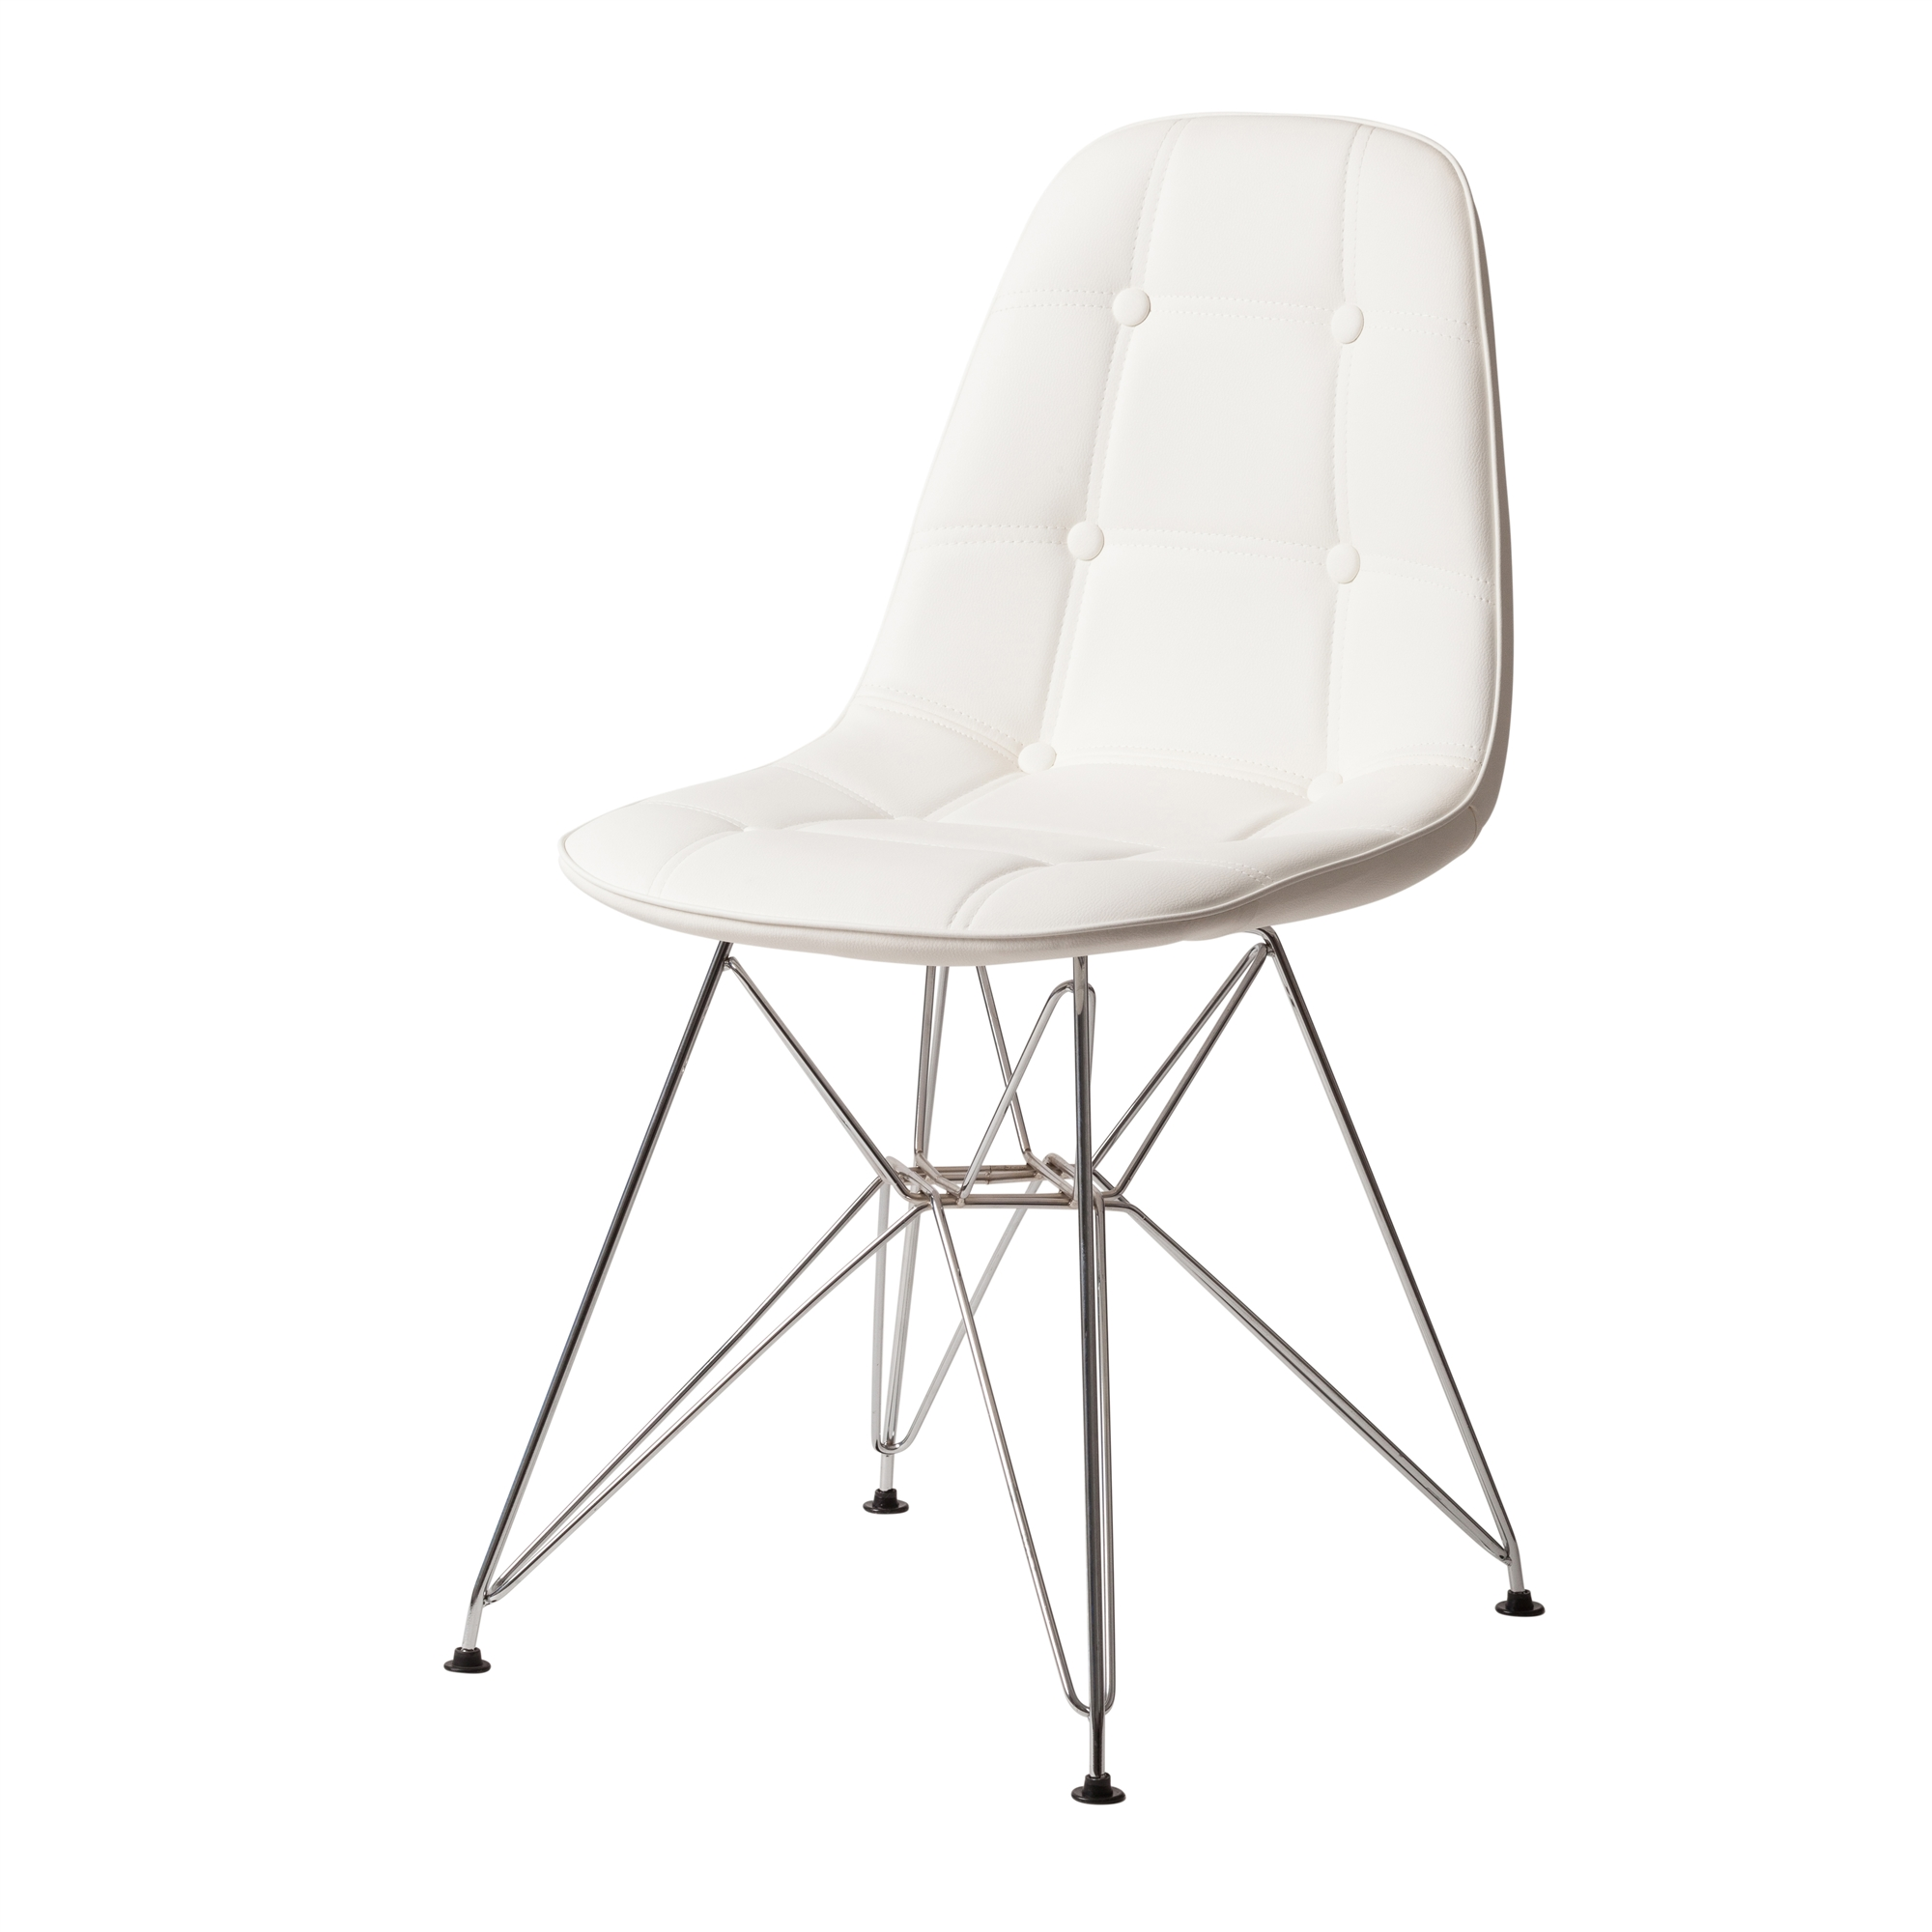 Stupendous Dsr Style White Leather Side Chair With Chrome Legs Machost Co Dining Chair Design Ideas Machostcouk